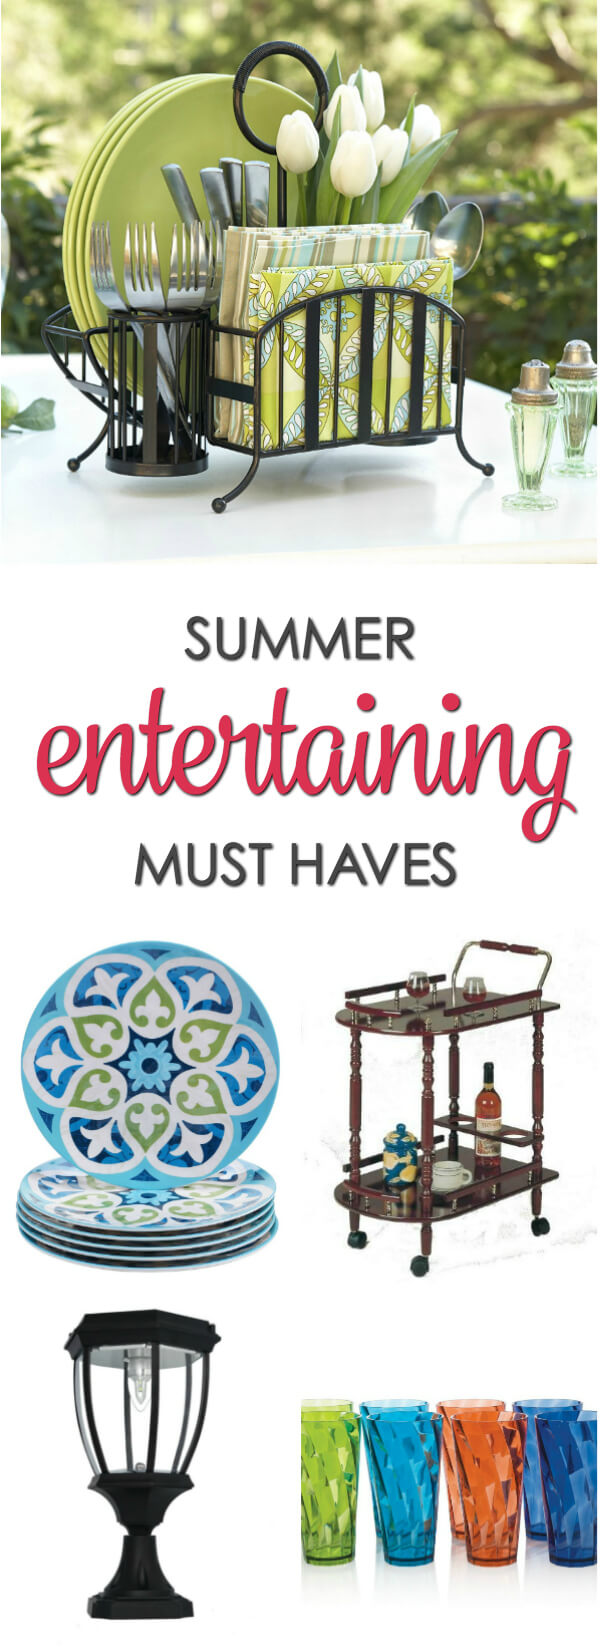 Summer Entertaining Essentials - everything you need to host the perfect summer party